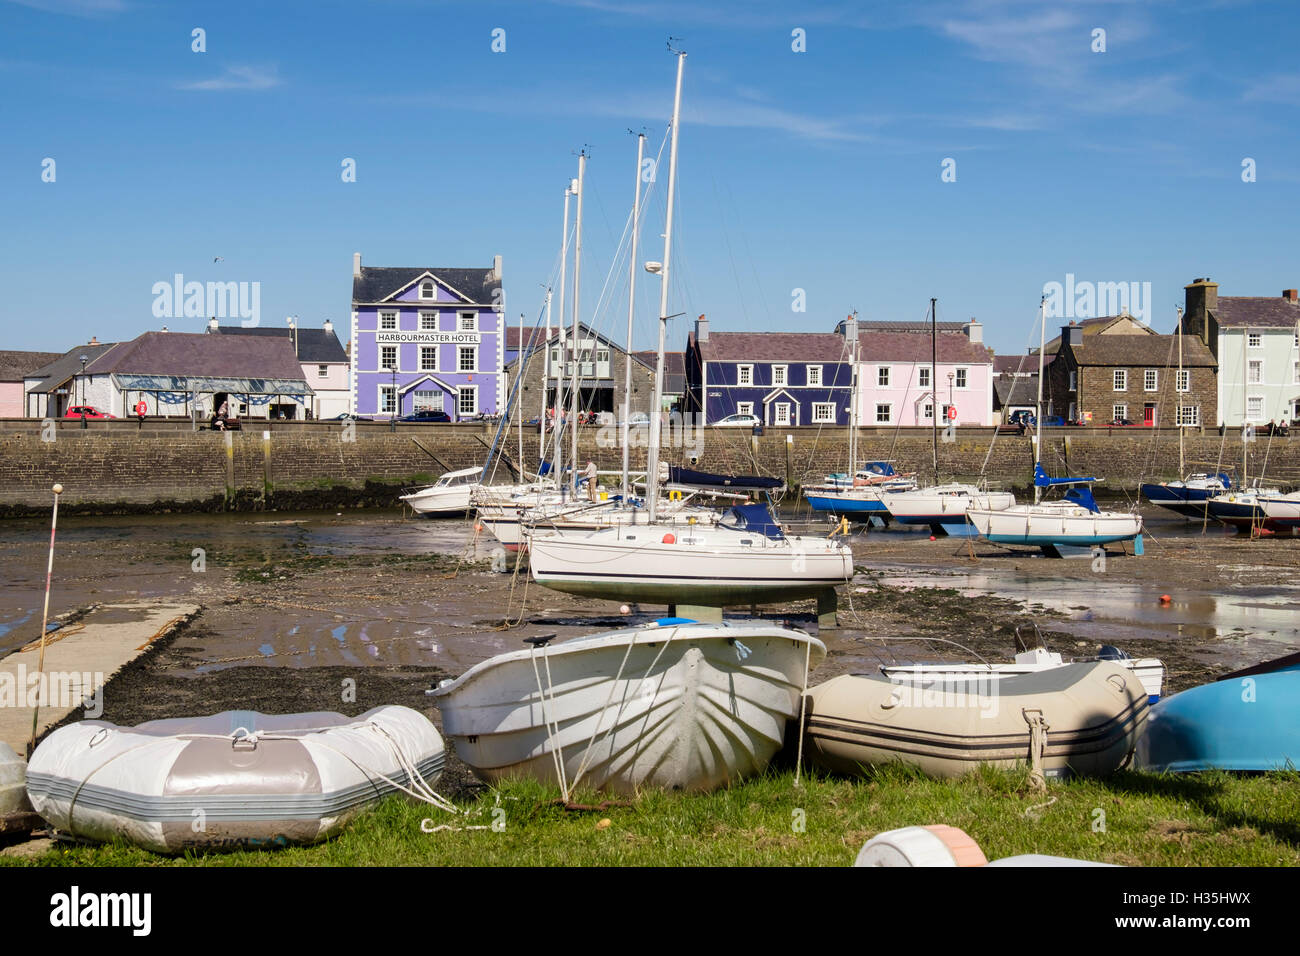 Regency style houses overlooking boats moored in the harbour on Afon Aeron River. Aberaeron, Ceredigion, Wales, - Stock Image